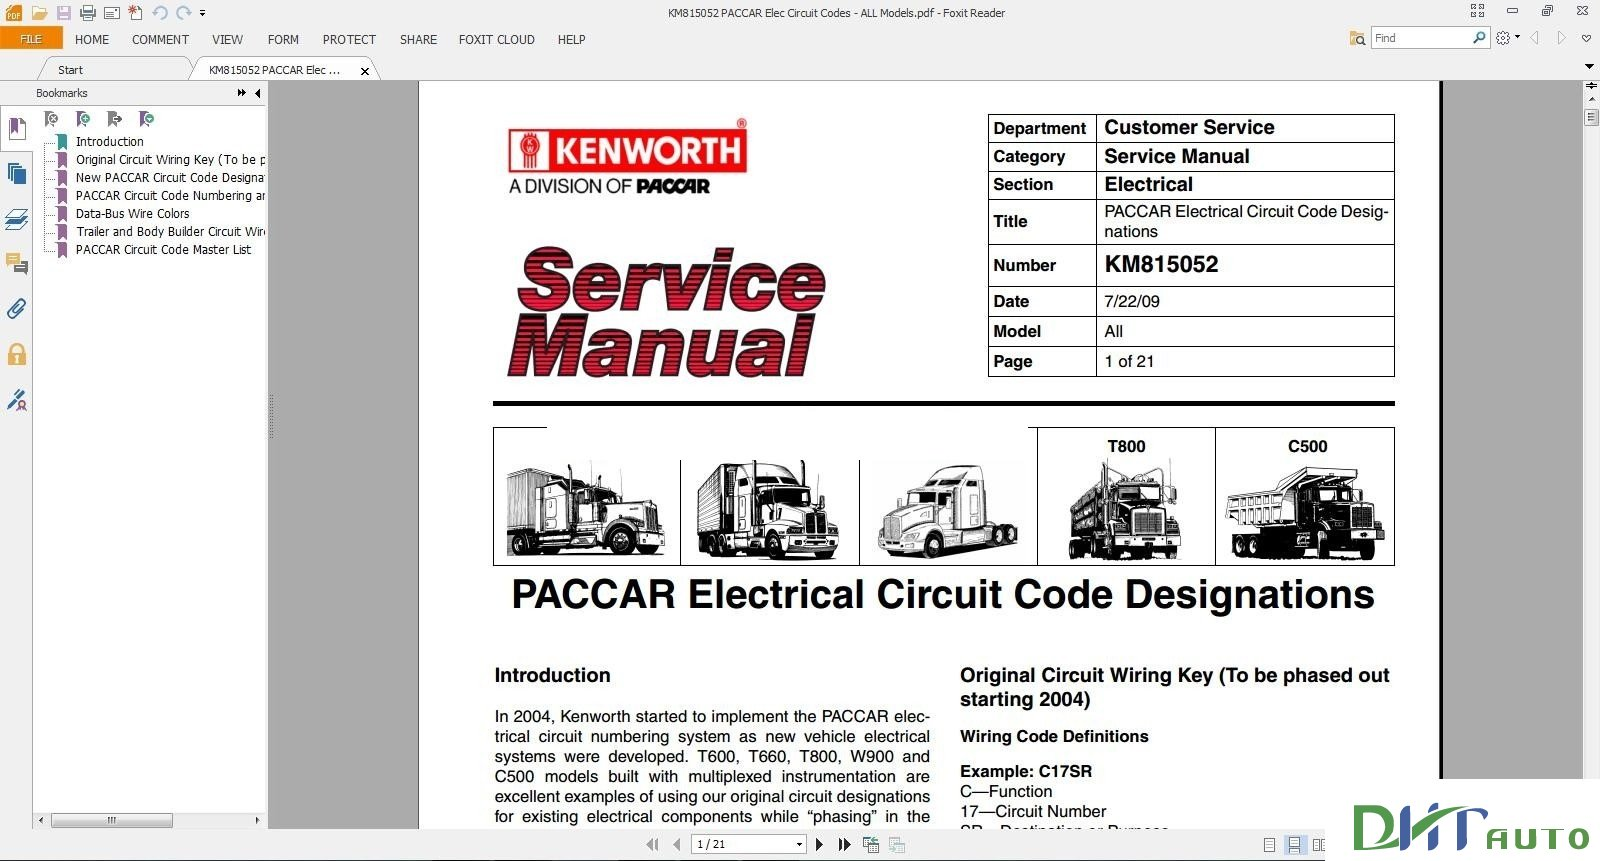 kenworth w900 t800 service manual open source user manual u2022 rh dramatic varieties com 1994 T800 Wiring Schematic for A Kenworth T800 Wiring Diagram Symbols